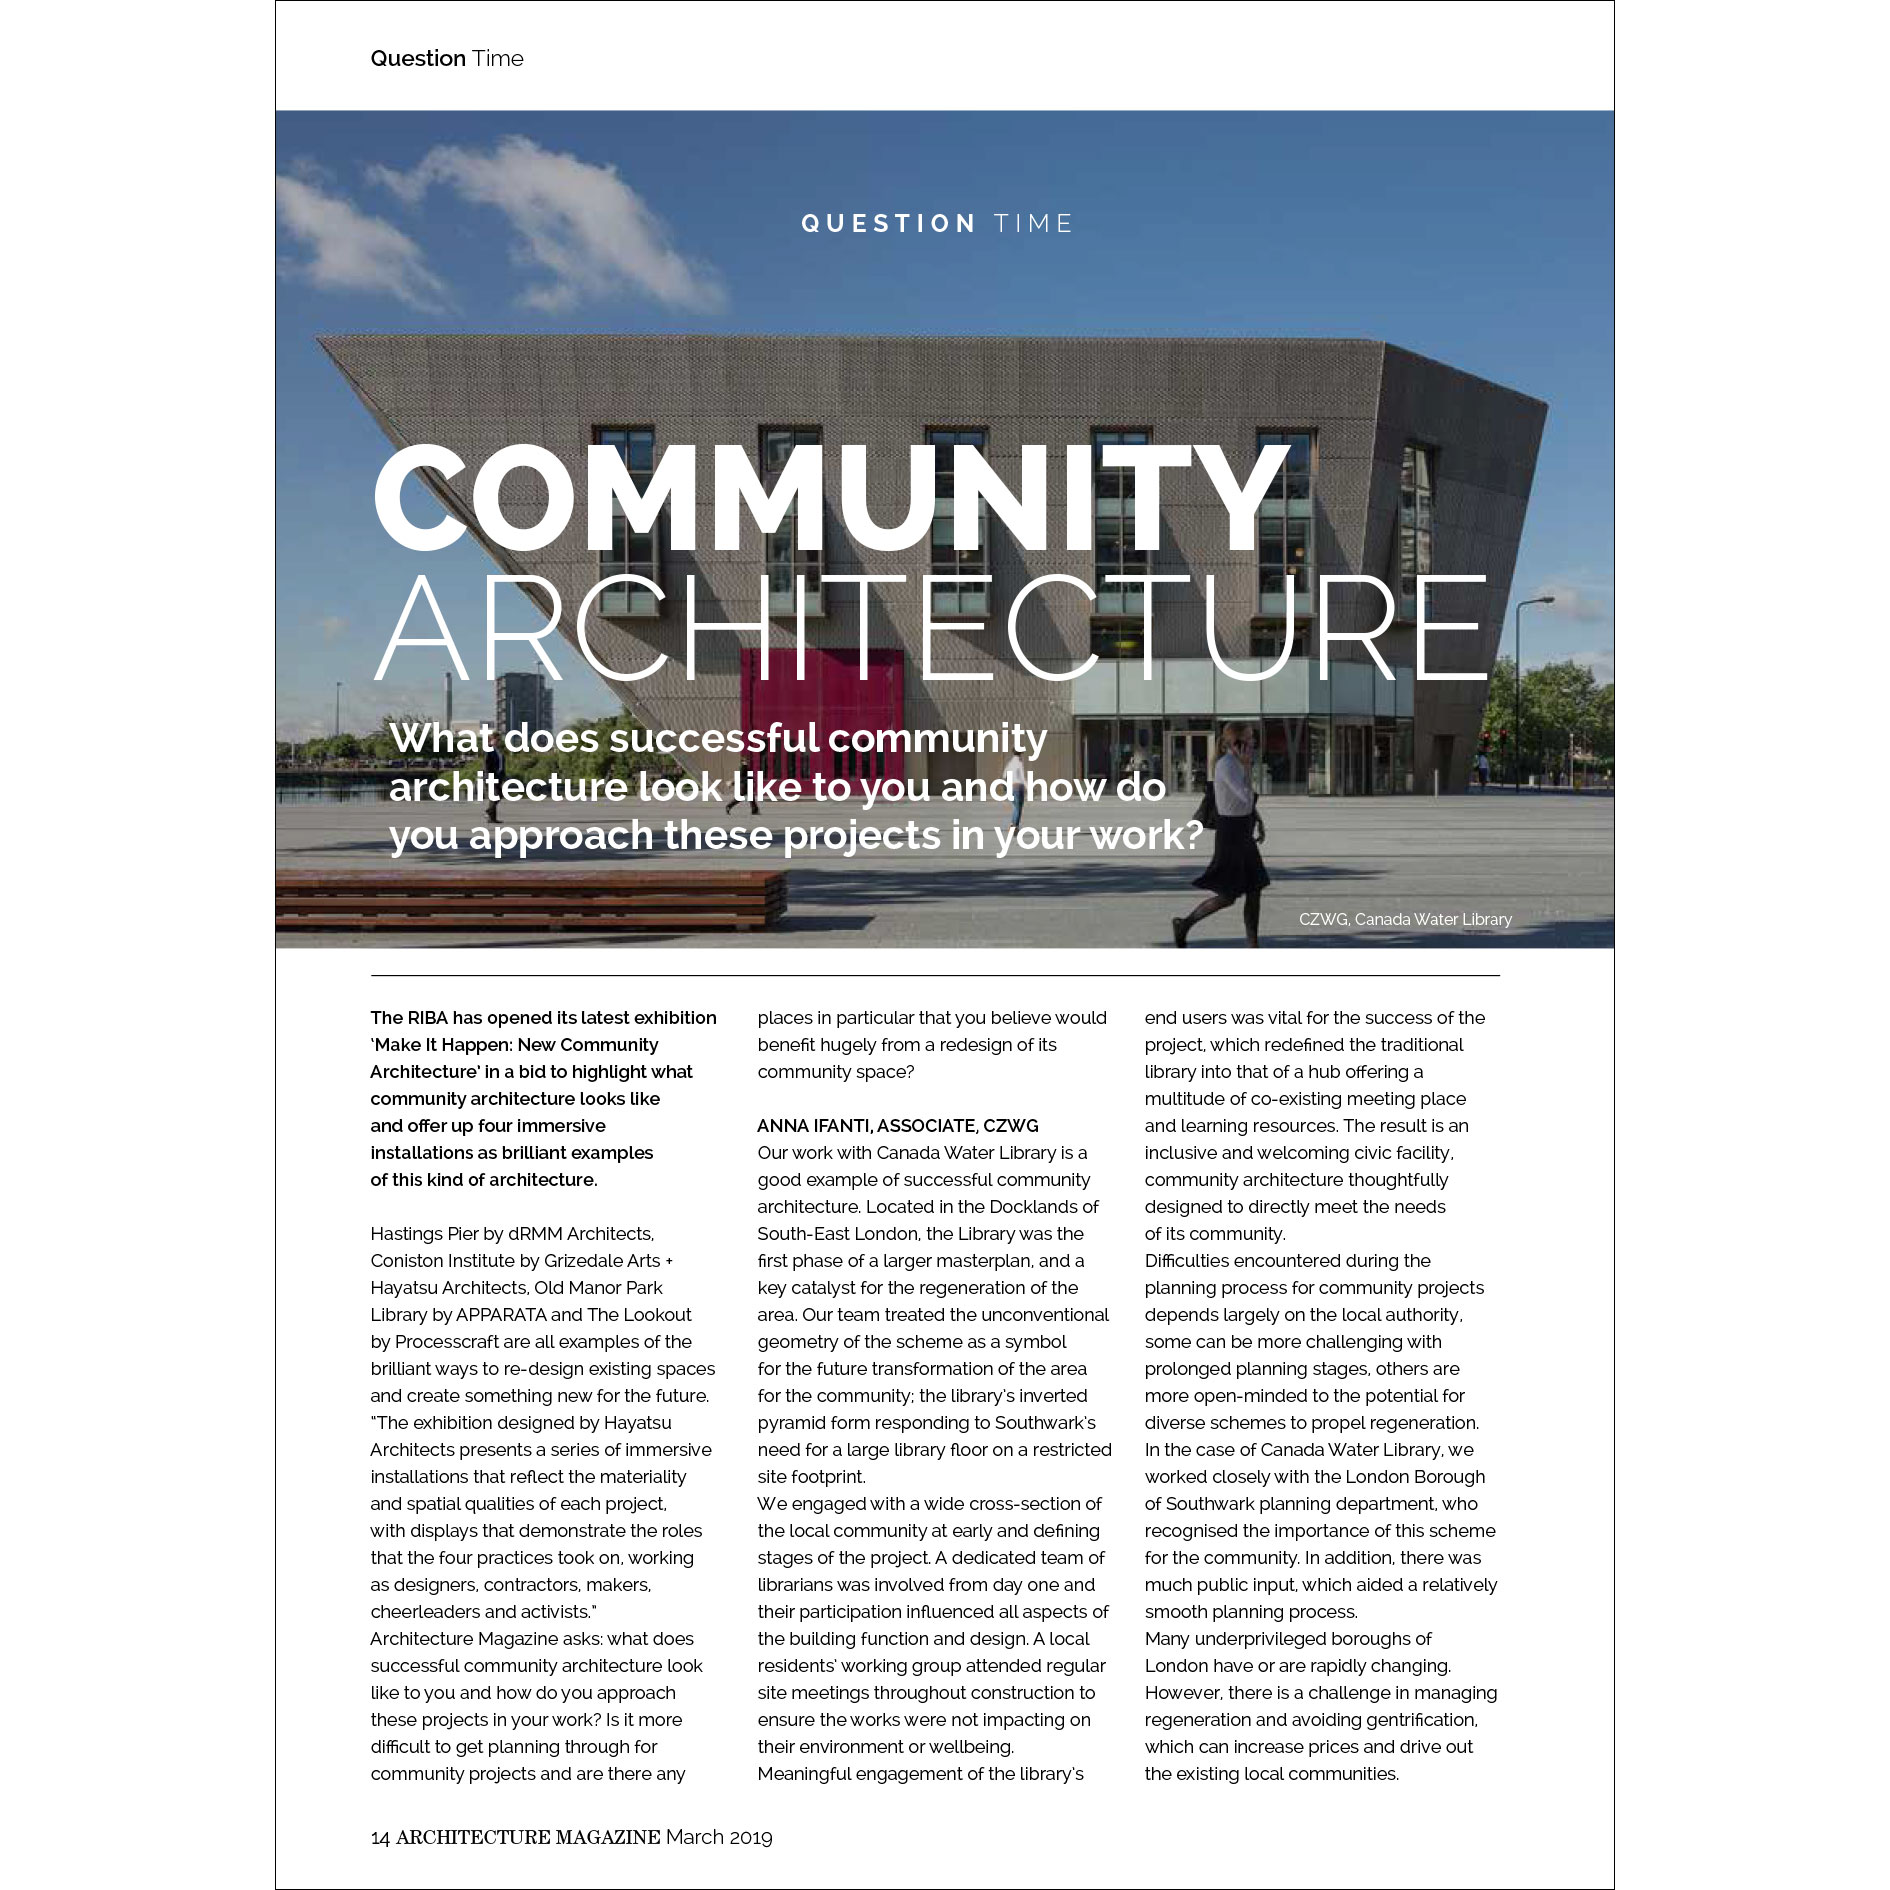 19-03-01-Canada-Water-featured-in-Architecture-Magazine.jpg